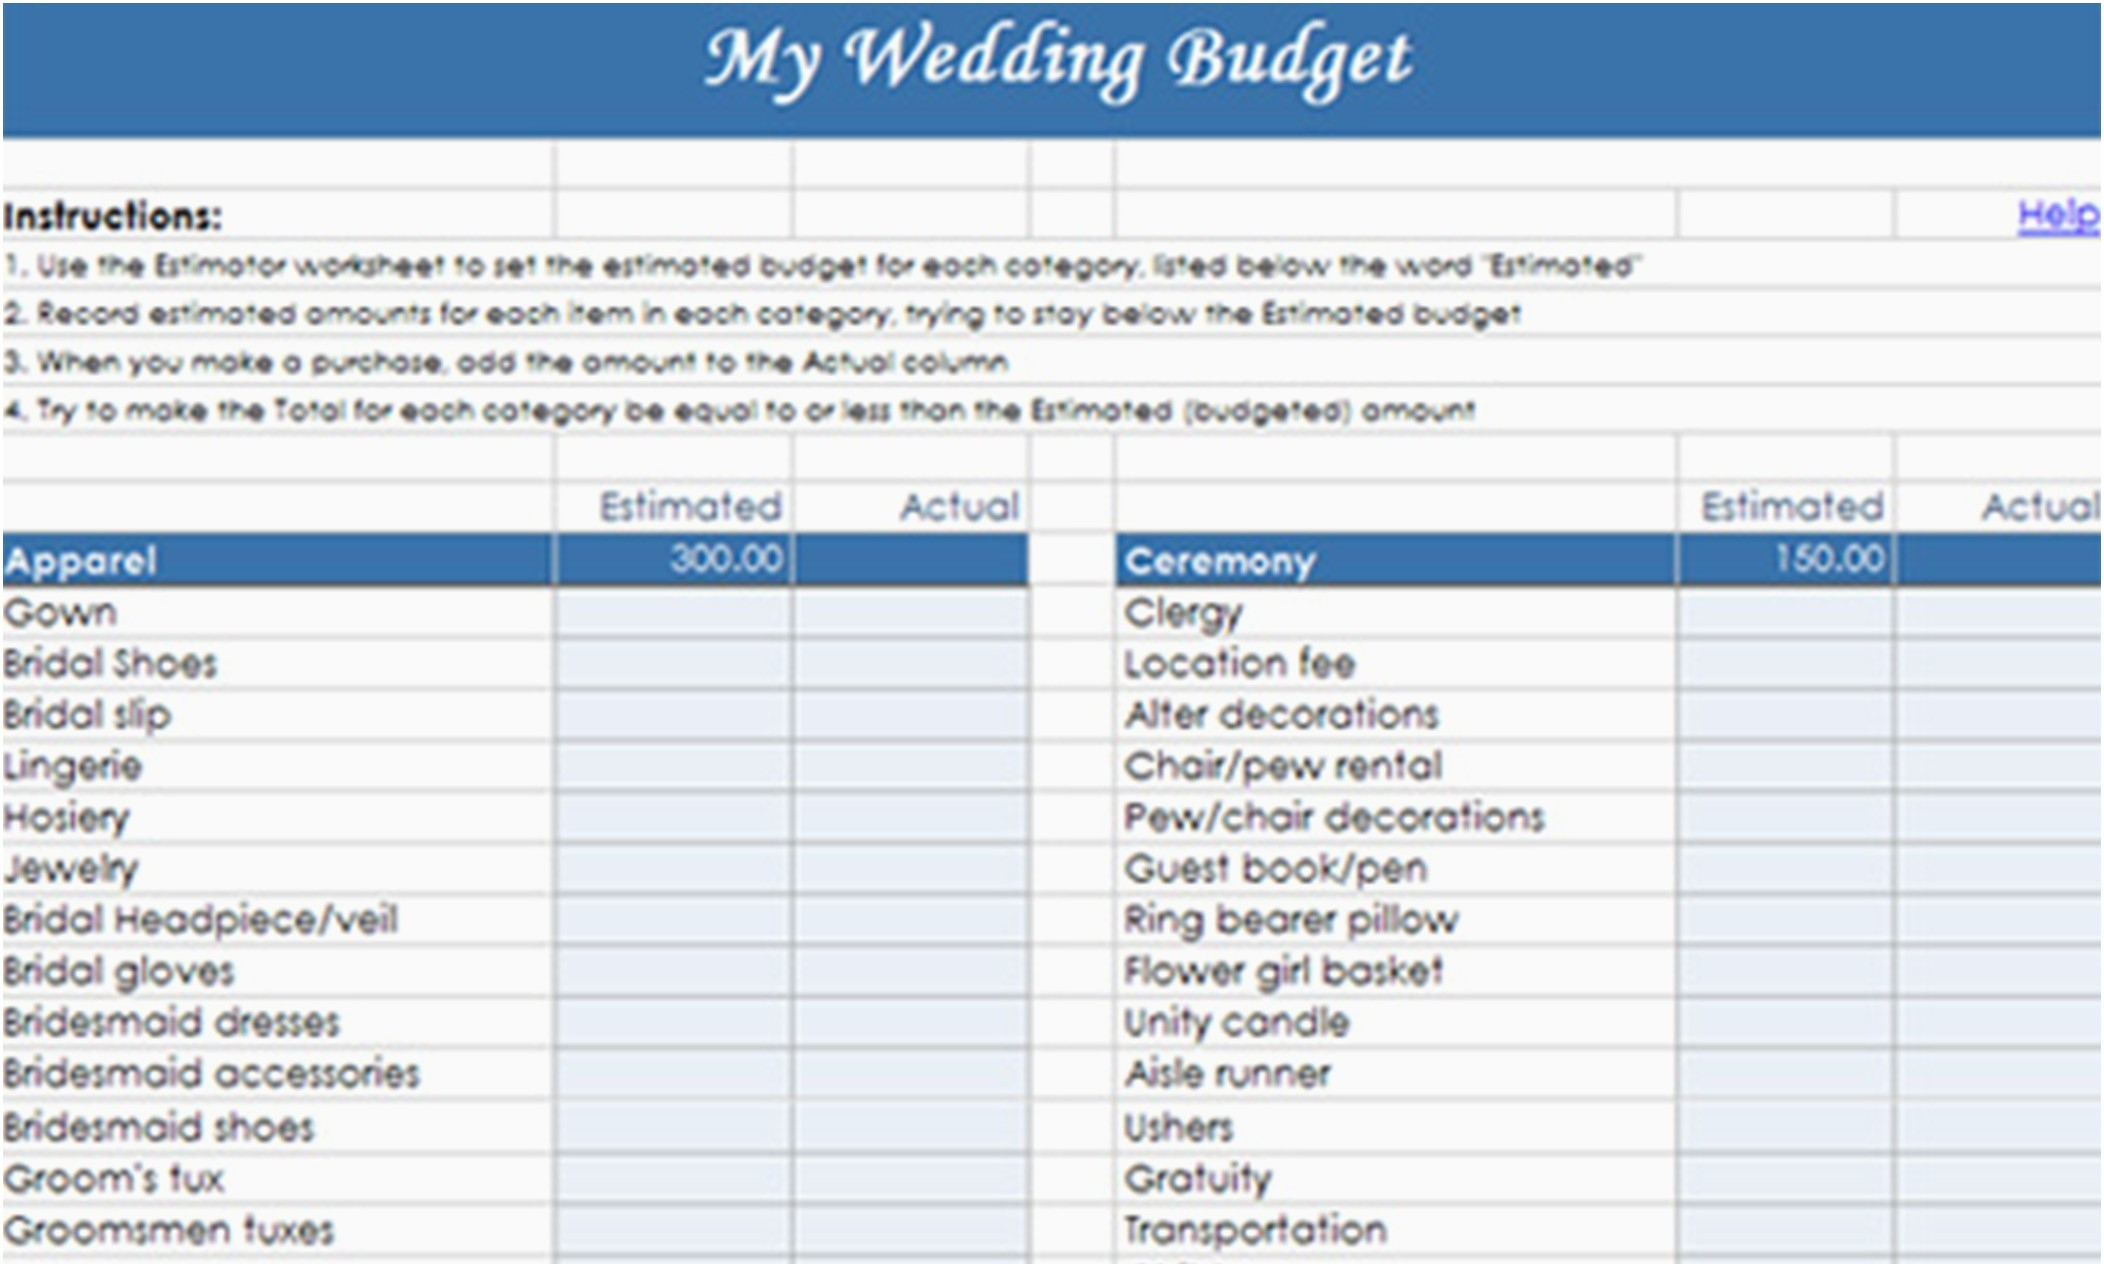 Budget Spreadsheet Google Docs in Budget Spreadsheet Google Docs Inspirational Google Excel Template